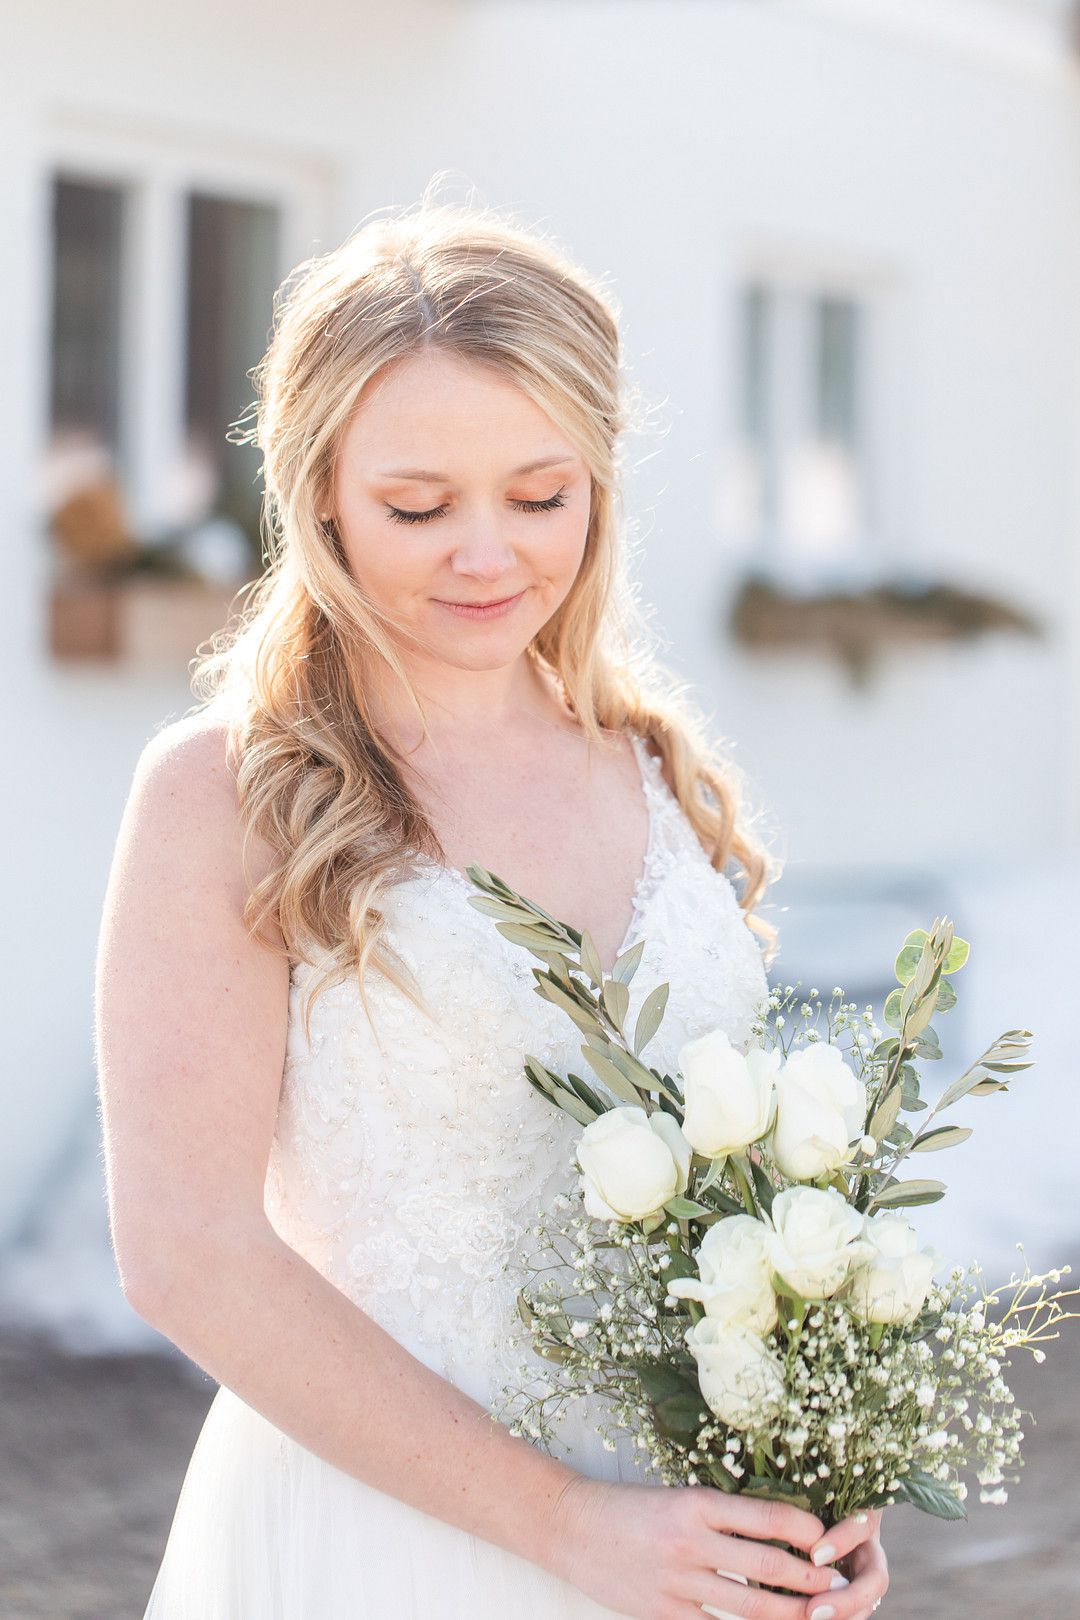 upclose image of bride holding flowers